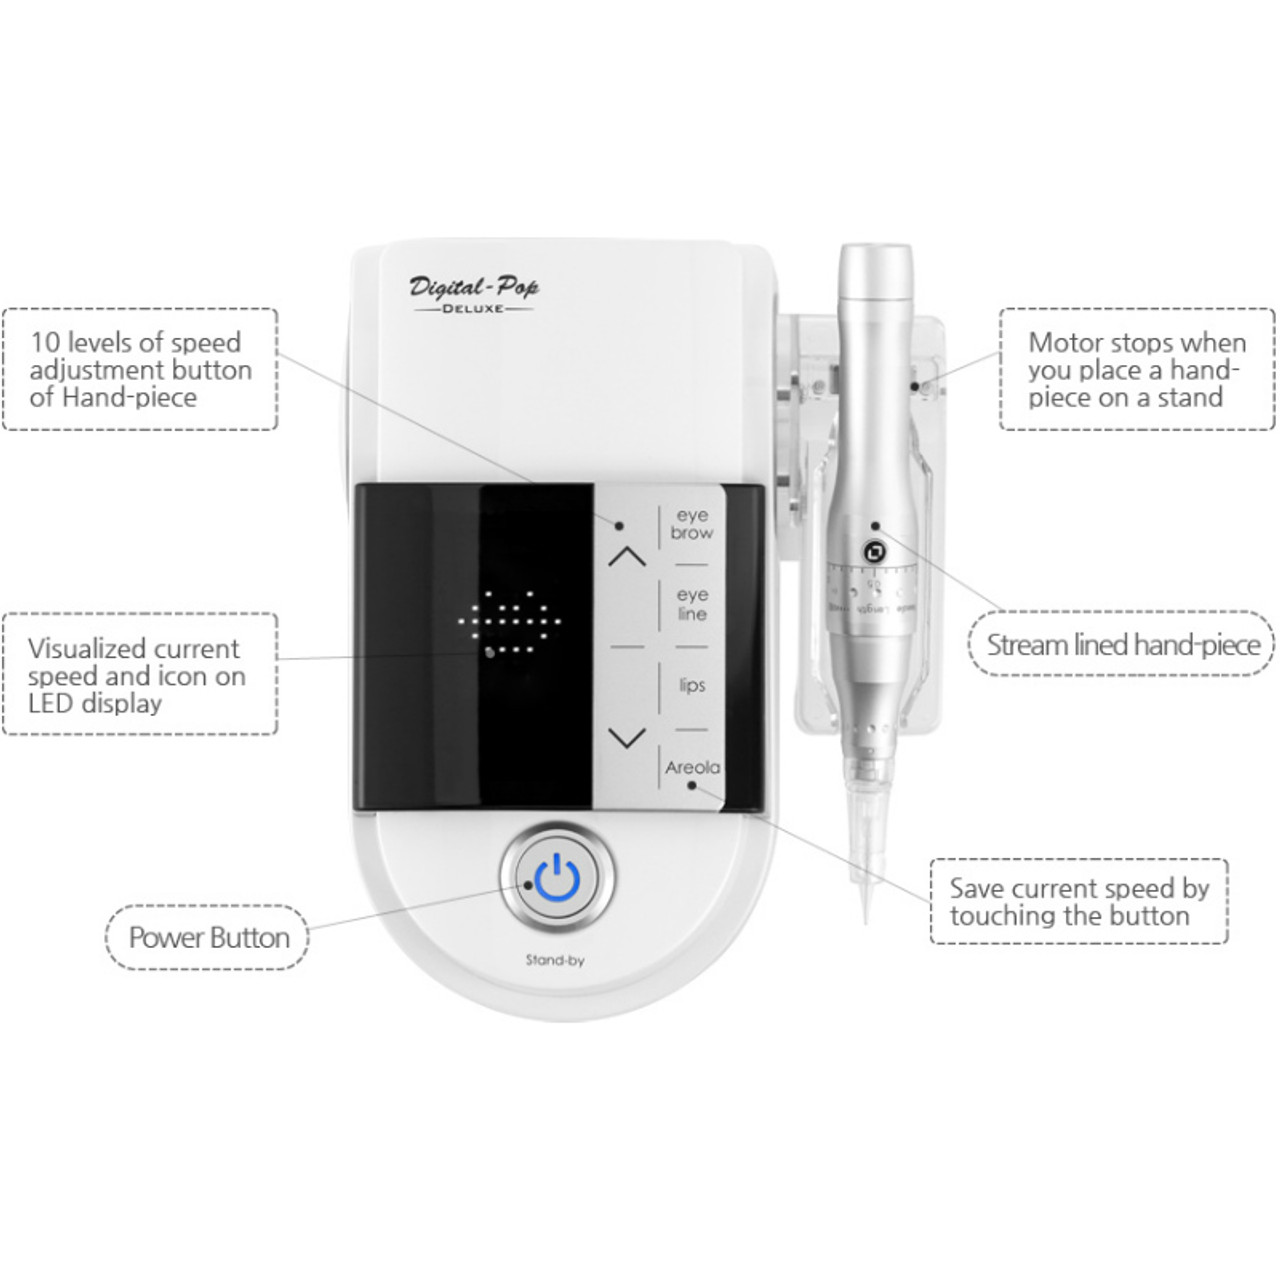 Bomtech Digital Pop Deluxe 10 Speed Permanent Makeup (PMU) Machine